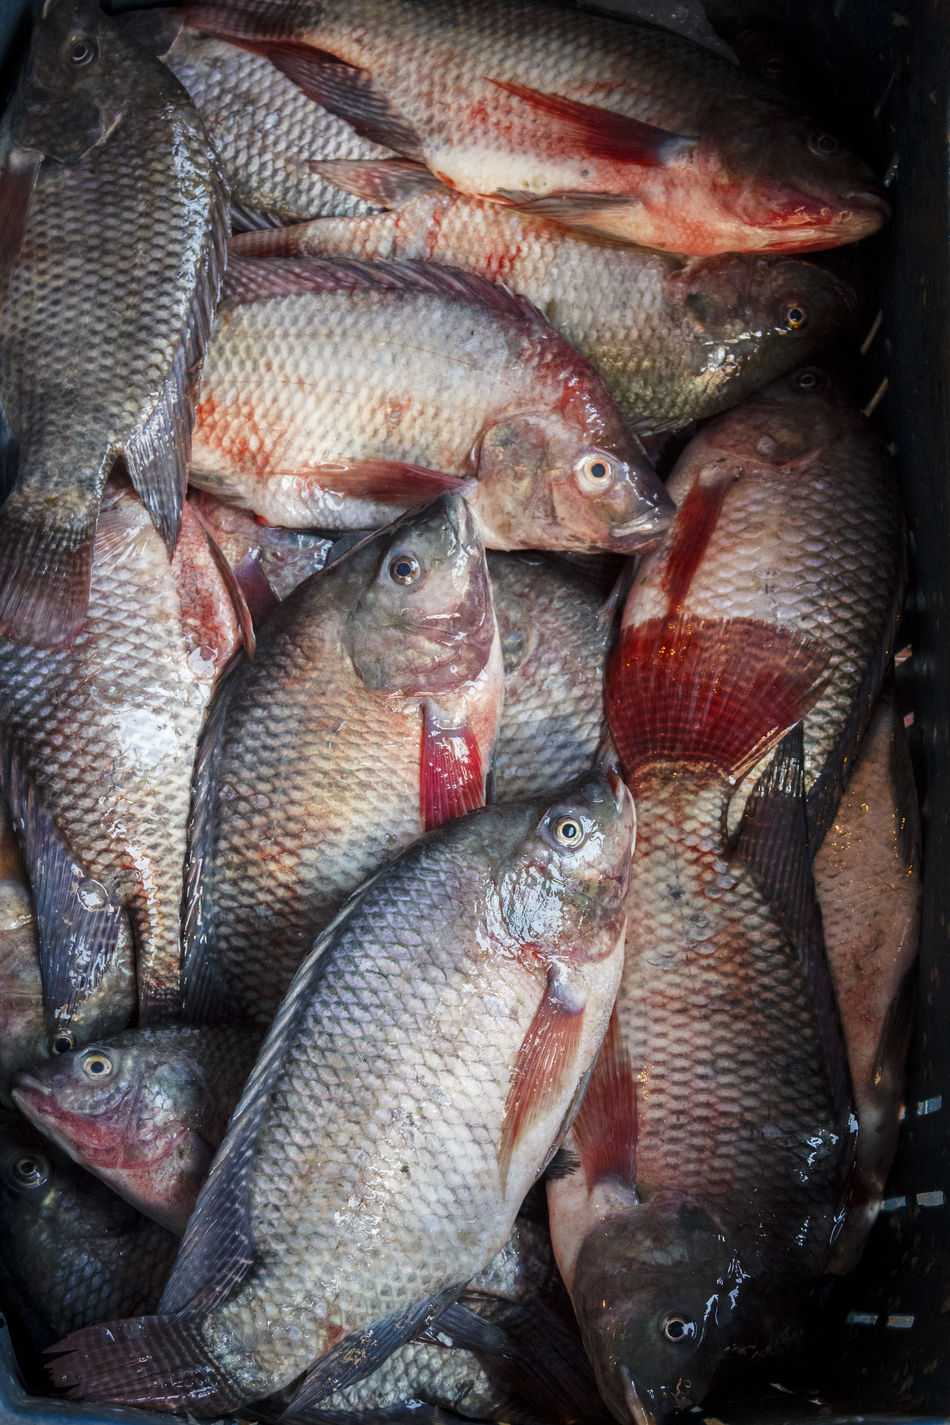 Backgrounds Close-up Day Fish Fish Market Food Food And Drink For Sale Freshness Full Frame Healthy Eating Indoors  Large Group Of Objects Market Market Stall No People Raw Raw Fish Raw Food Red Retail  Seafood Tilapia Tilapia Fish Tanks Tilapiafish